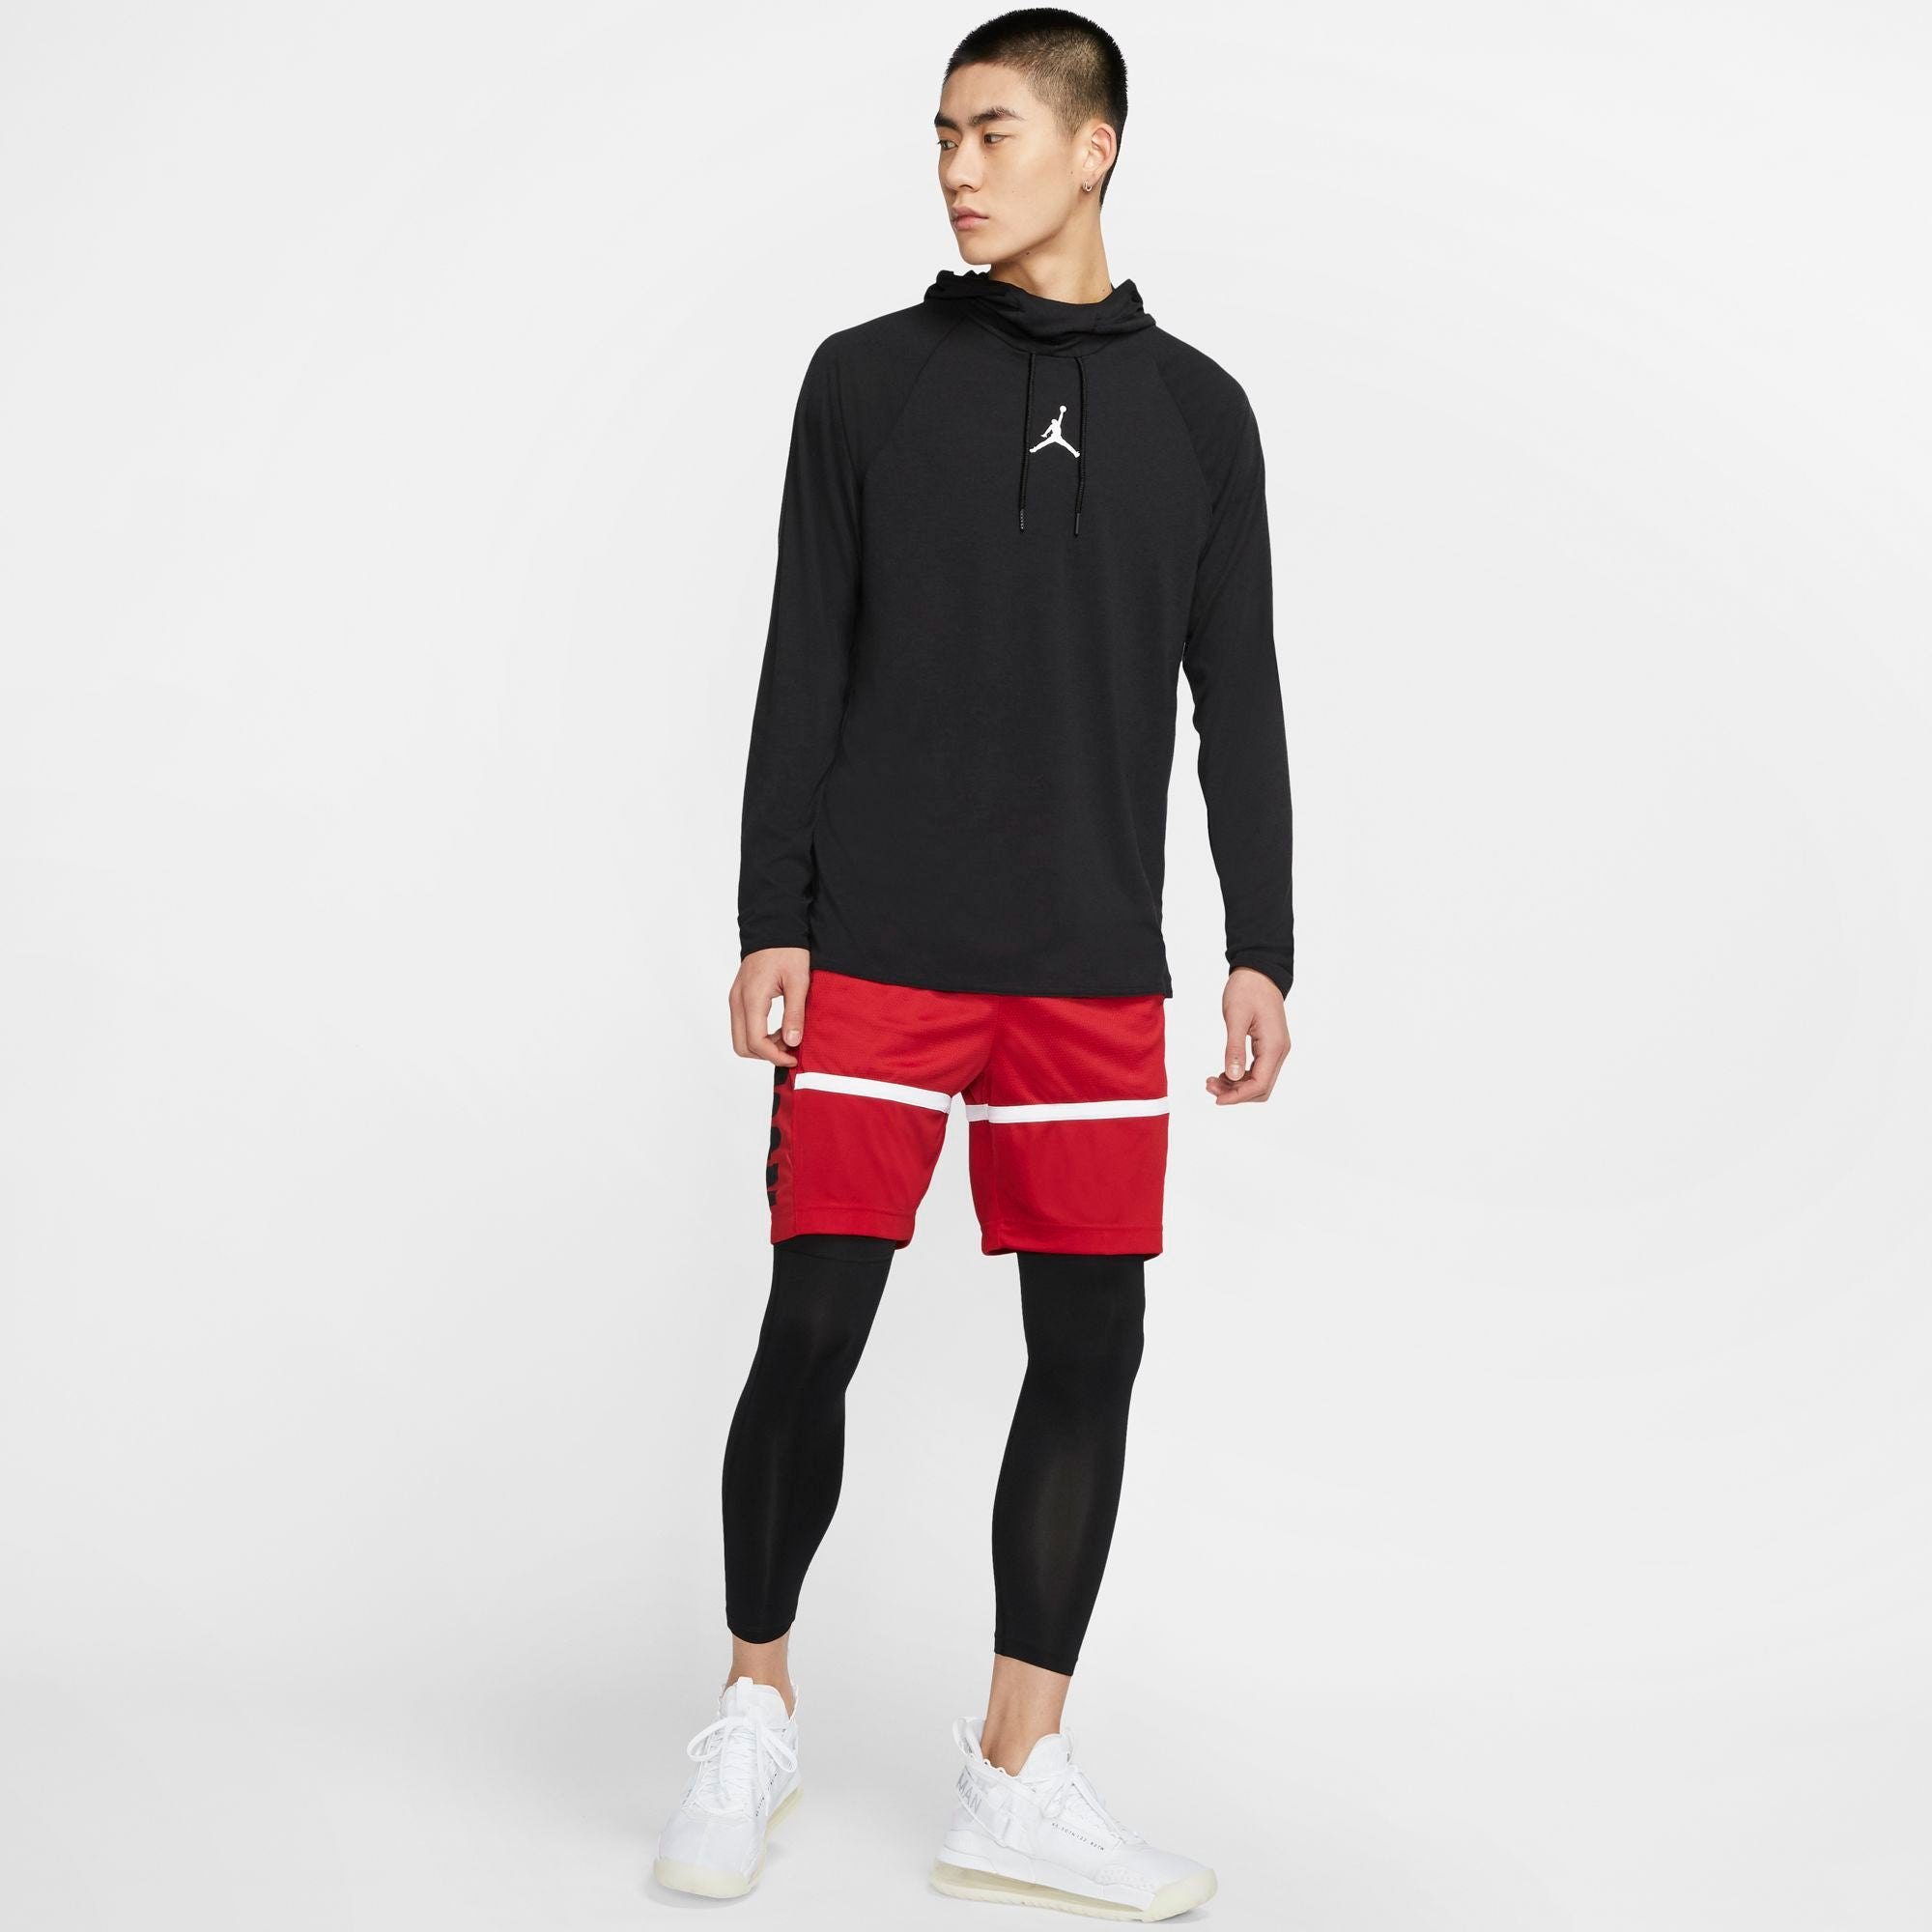 Nike Jordan Dri-Fit 23 Alpha Hooded Training Top - Black/White